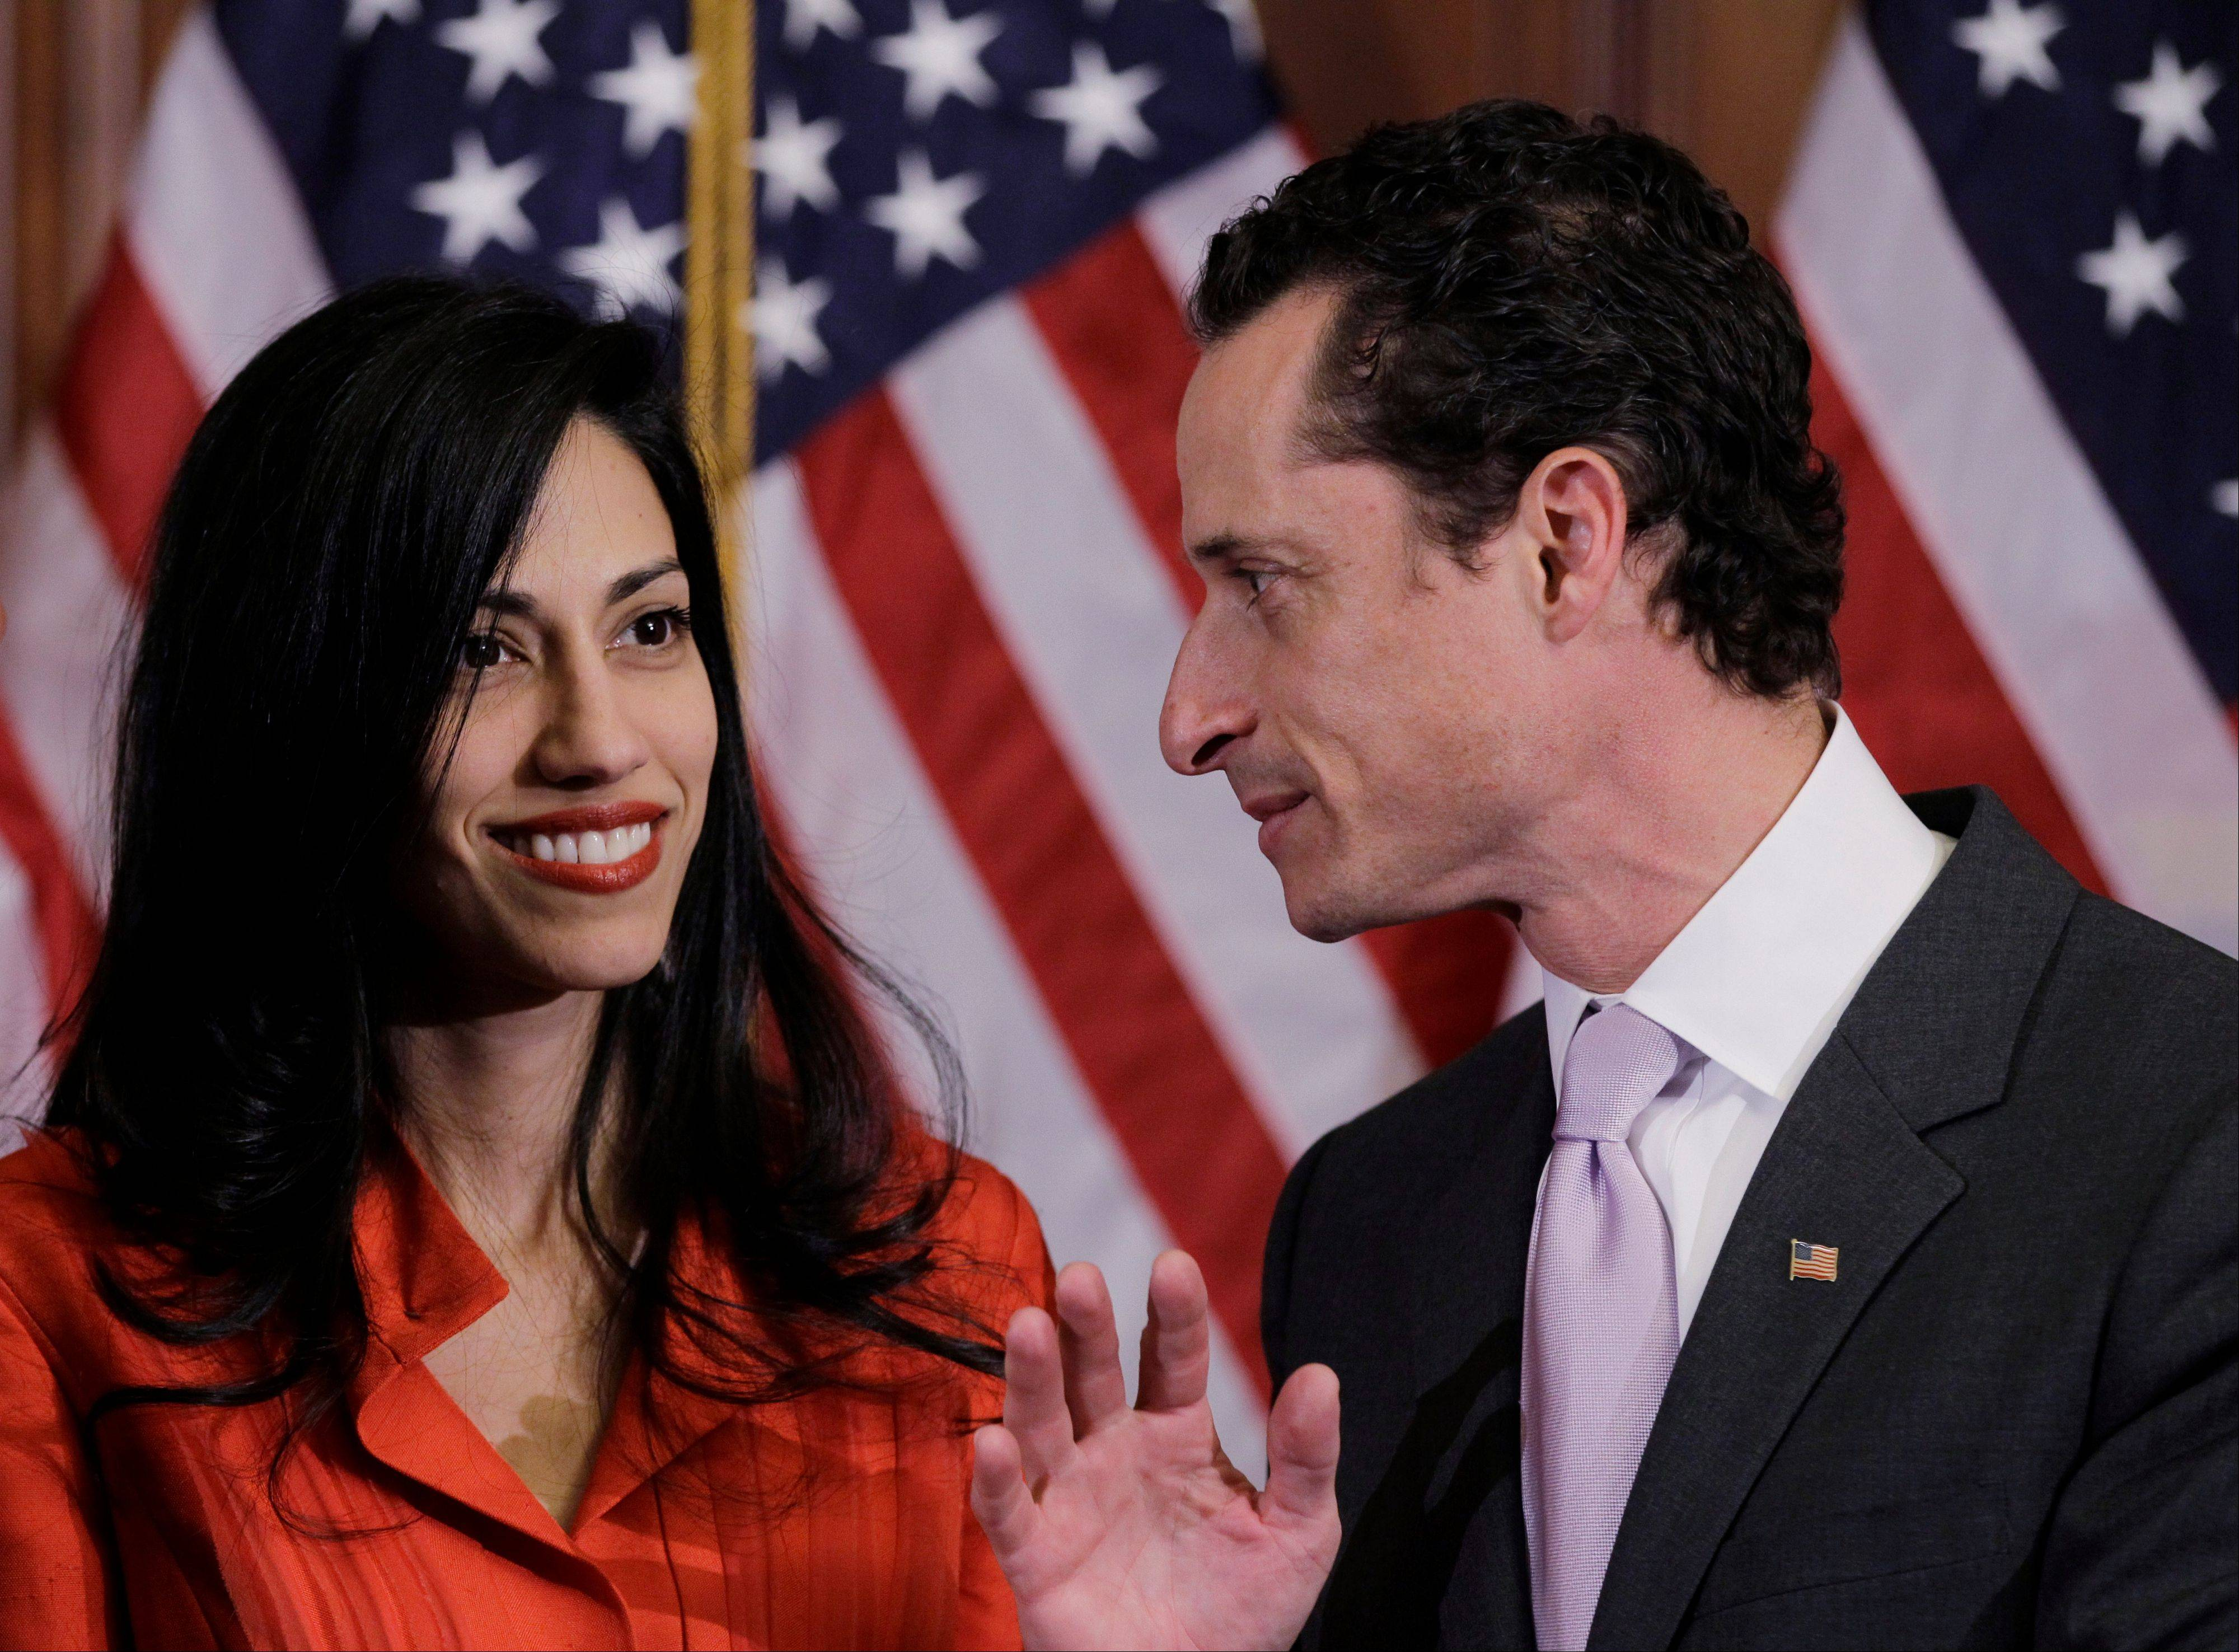 Anthony Weiner and his wife, Huma Abedin. When Abedin�s name and face first started appearing in the media six years ago, lots of people couldn�t help but wonder what this beautiful, ambitious woman with high-fashion sense and a world-class Rolodex saw in Anthony Weiner. That�s a question New Yorkers are asking themselves again.